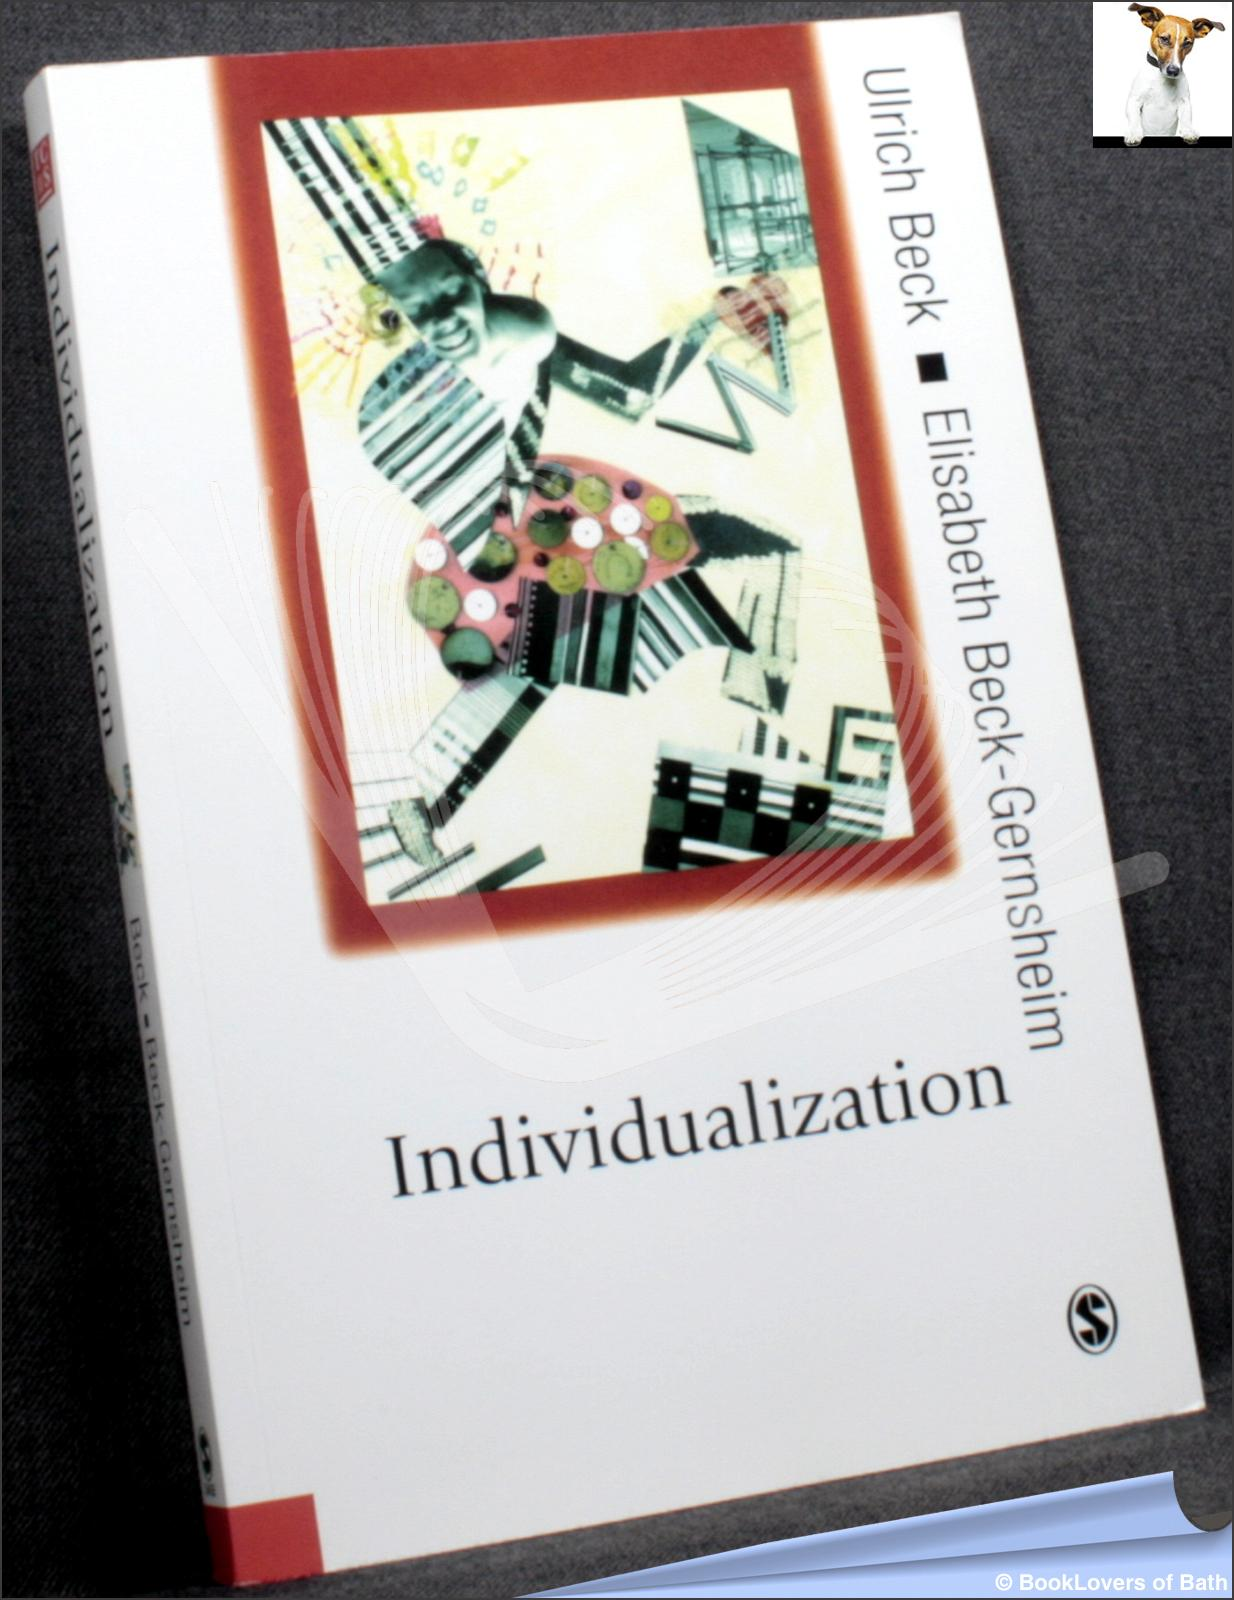 Individualization: Institutionalized Individualism and Its Social and Political Consequences - Ulrich Beck & Elizabeth Beck-Gernsheim